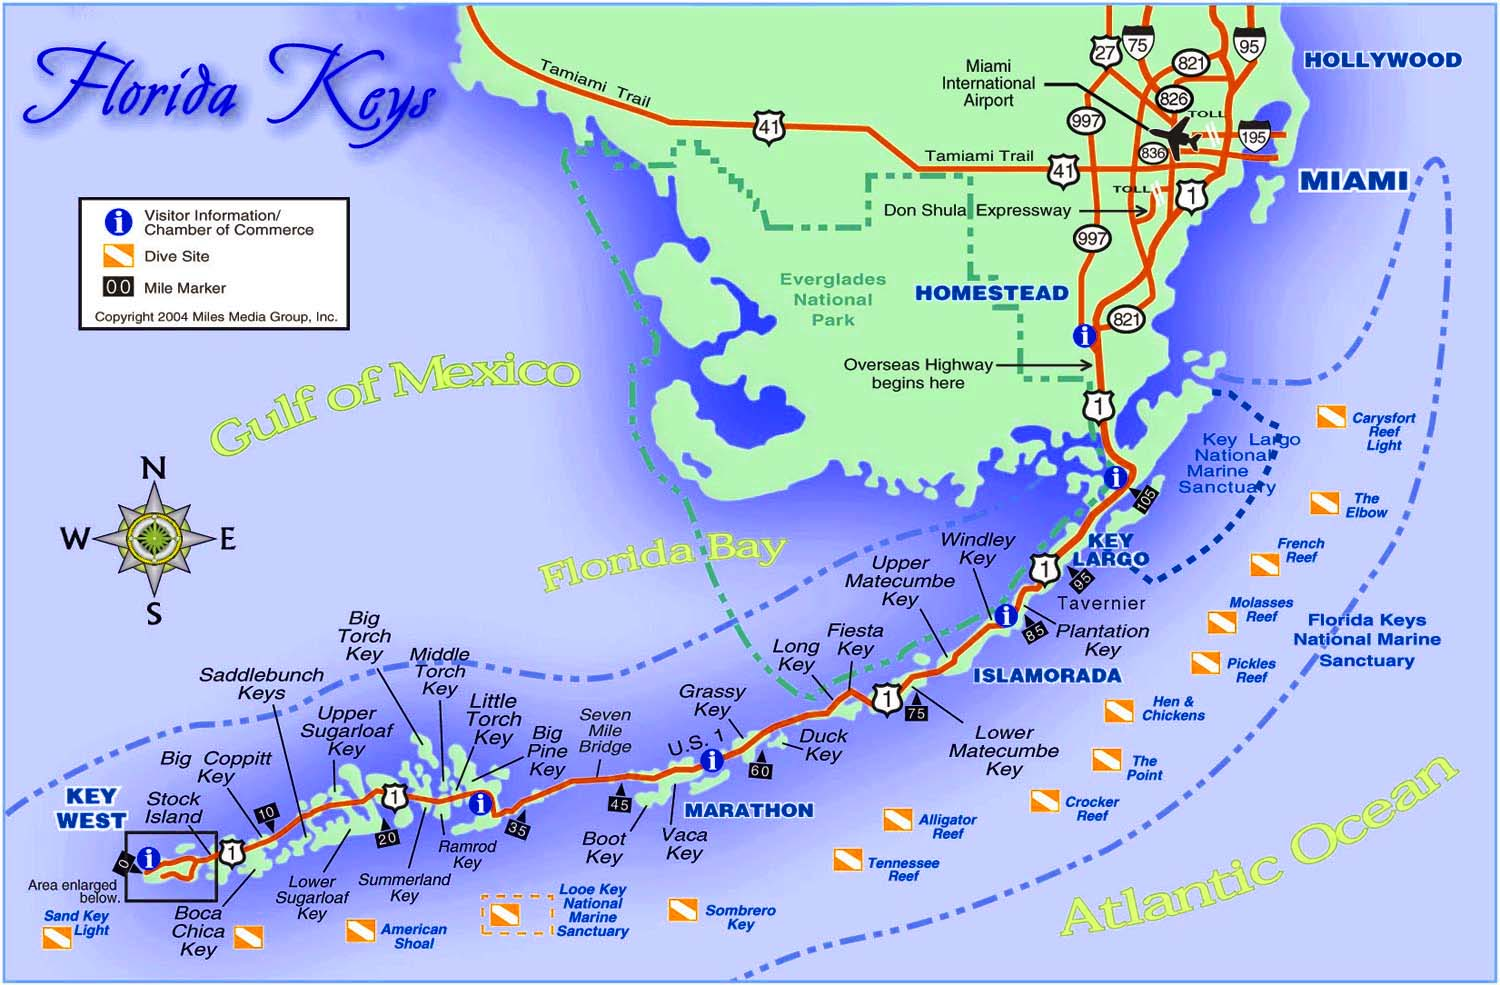 Key Largo Map Miami Pictures To Pin On Pinterest PinsDaddy - Map of miami florida